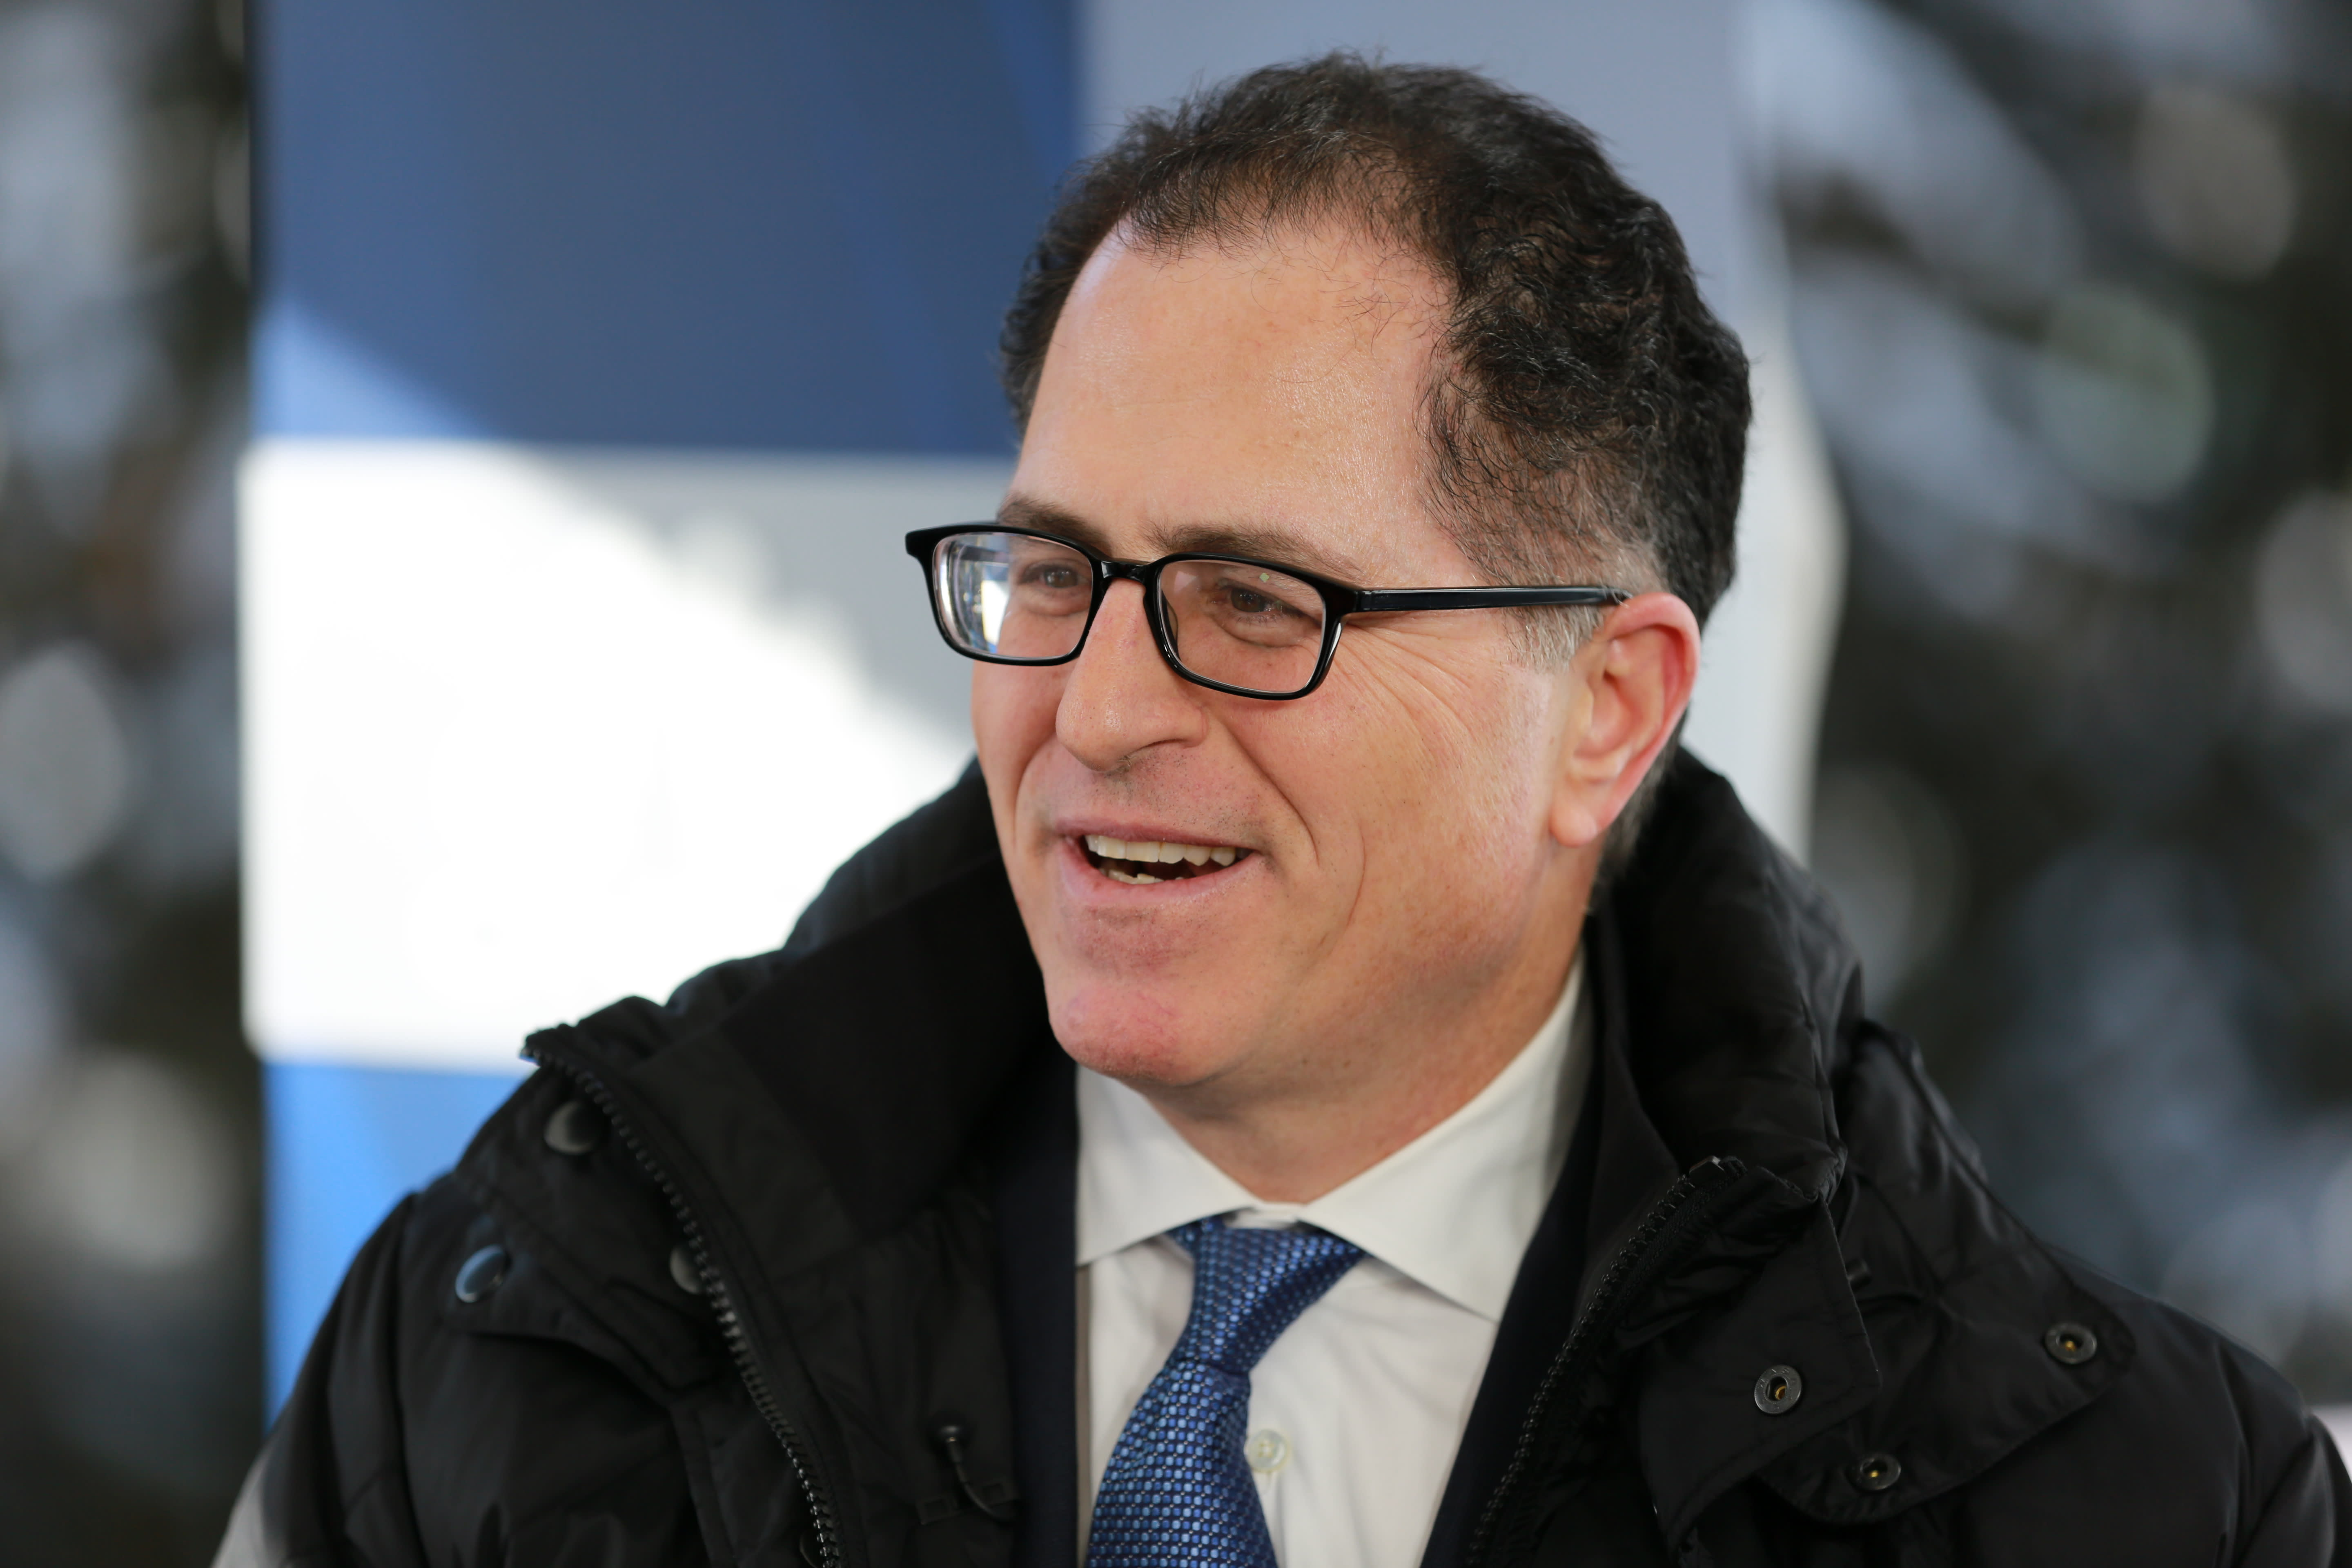 Michael Dell speaking at the 2019 WEF in Davos, Switzerland on Jan. 23rd, 2019.